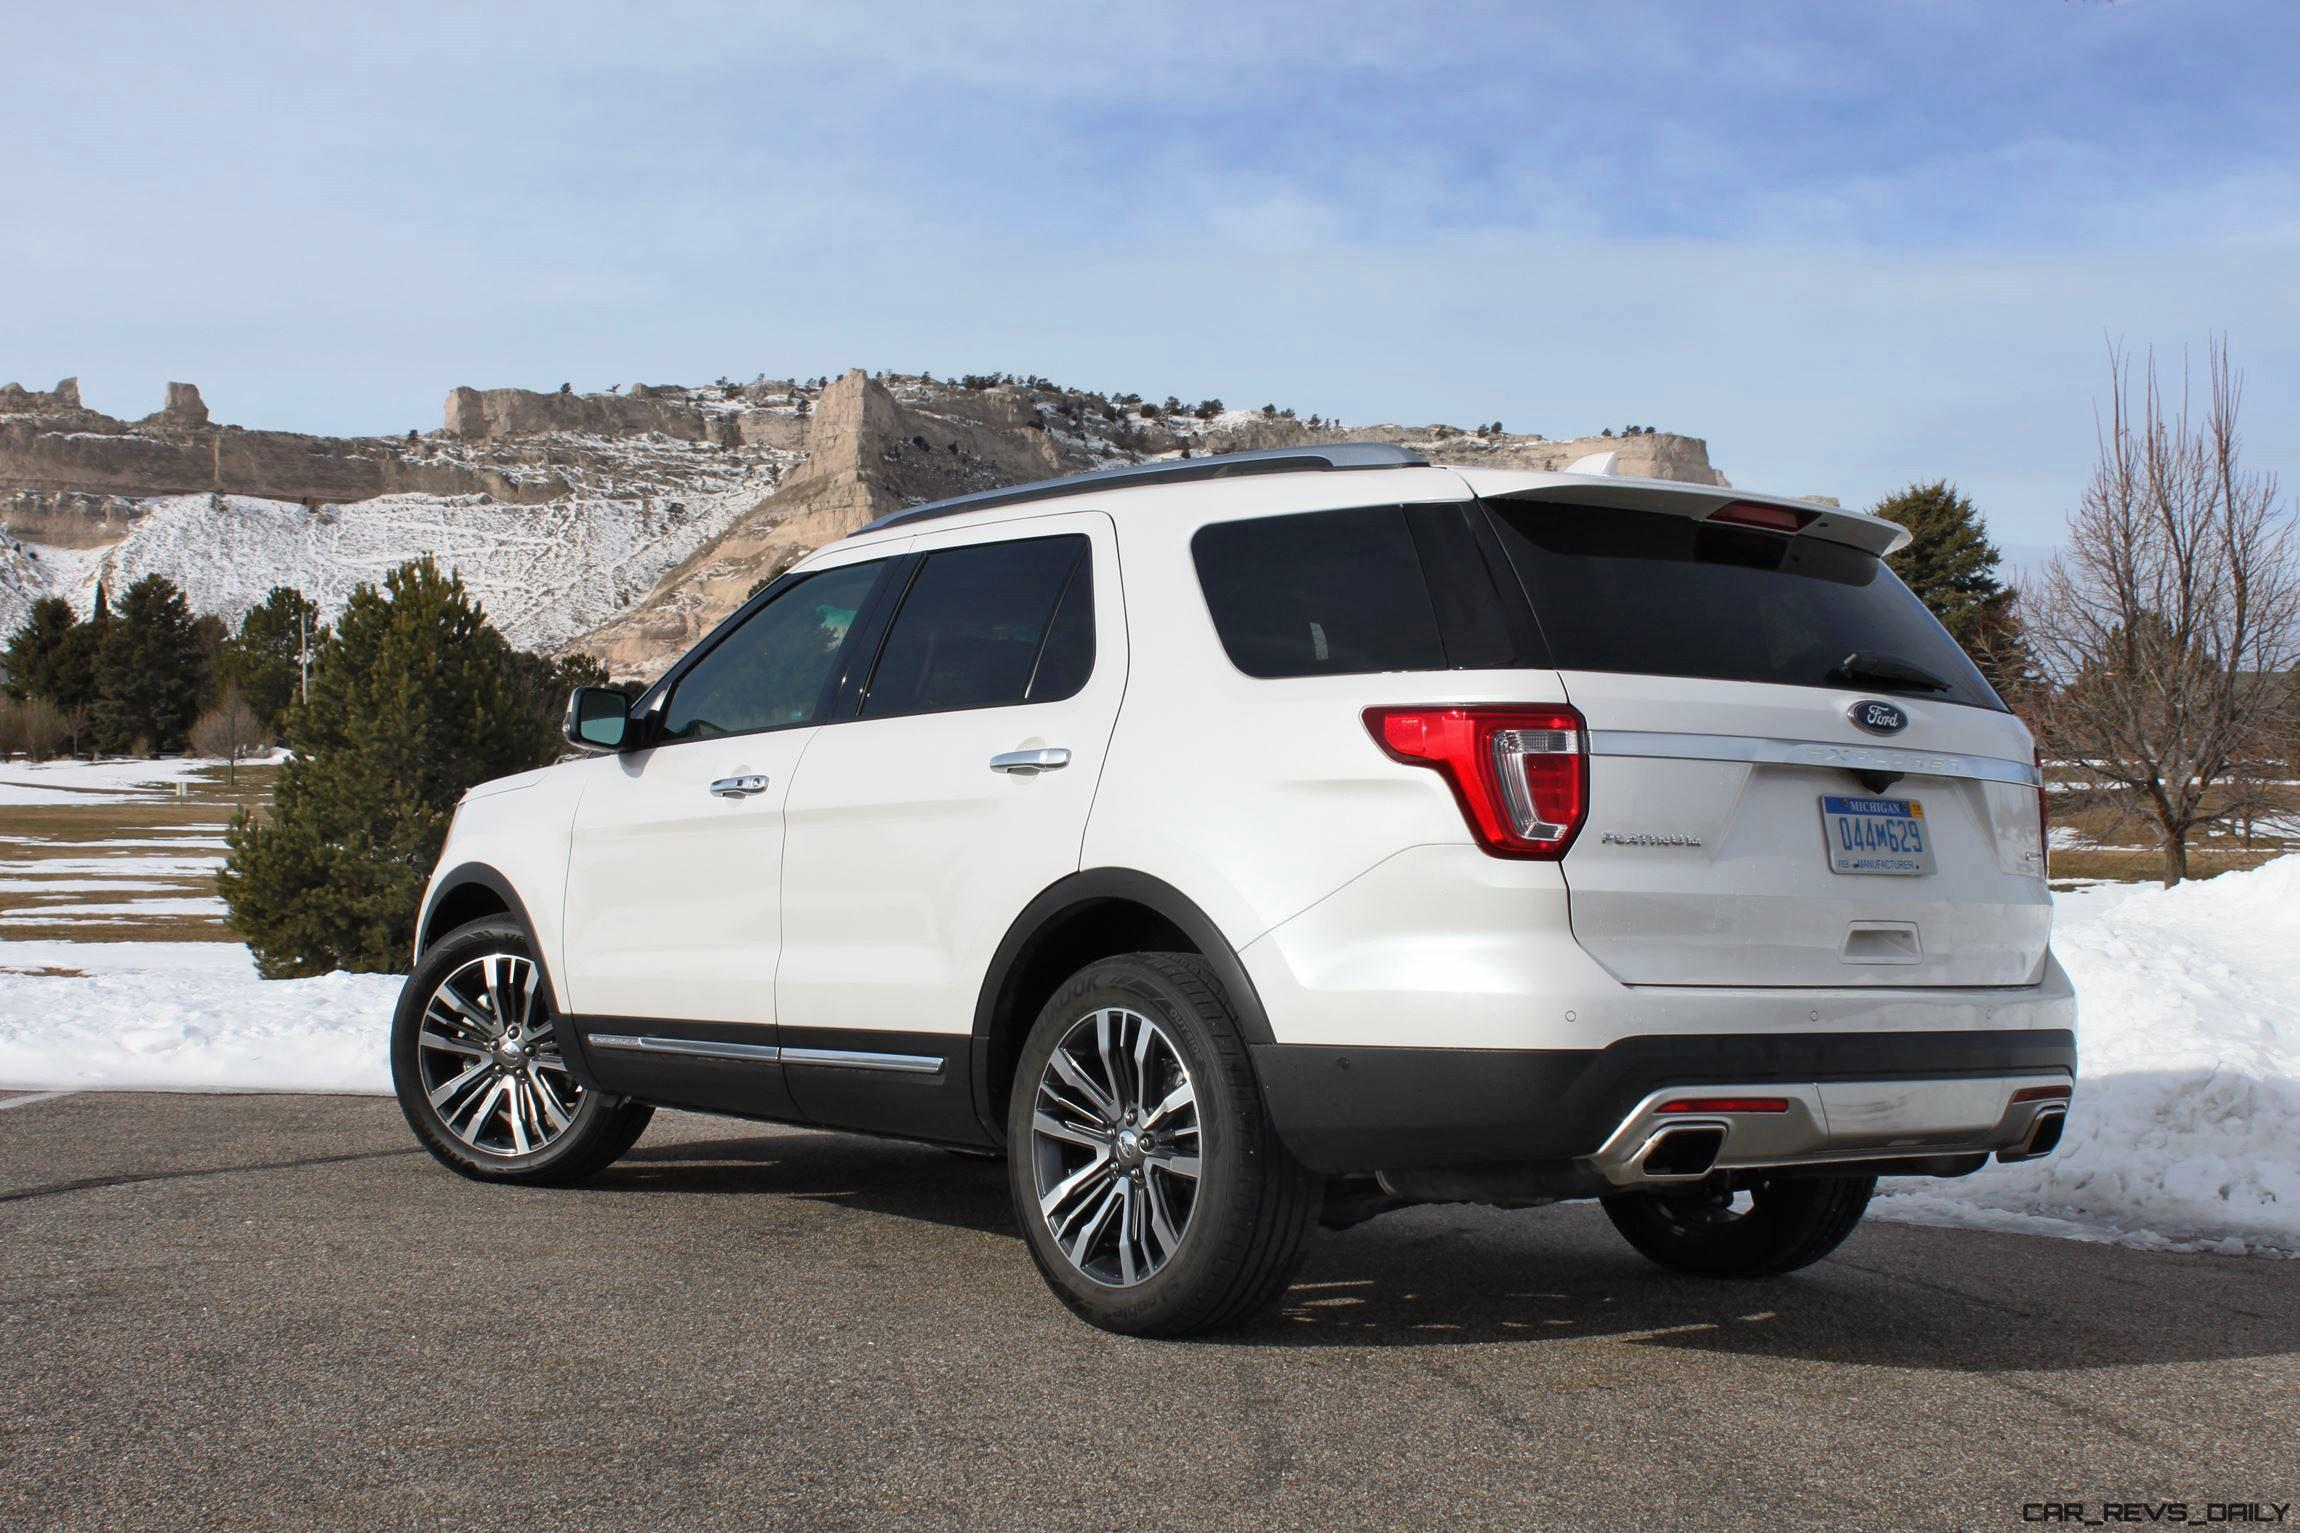 Road Test Review - 2016 Ford Explorer Platinum with Tim Esterdahl